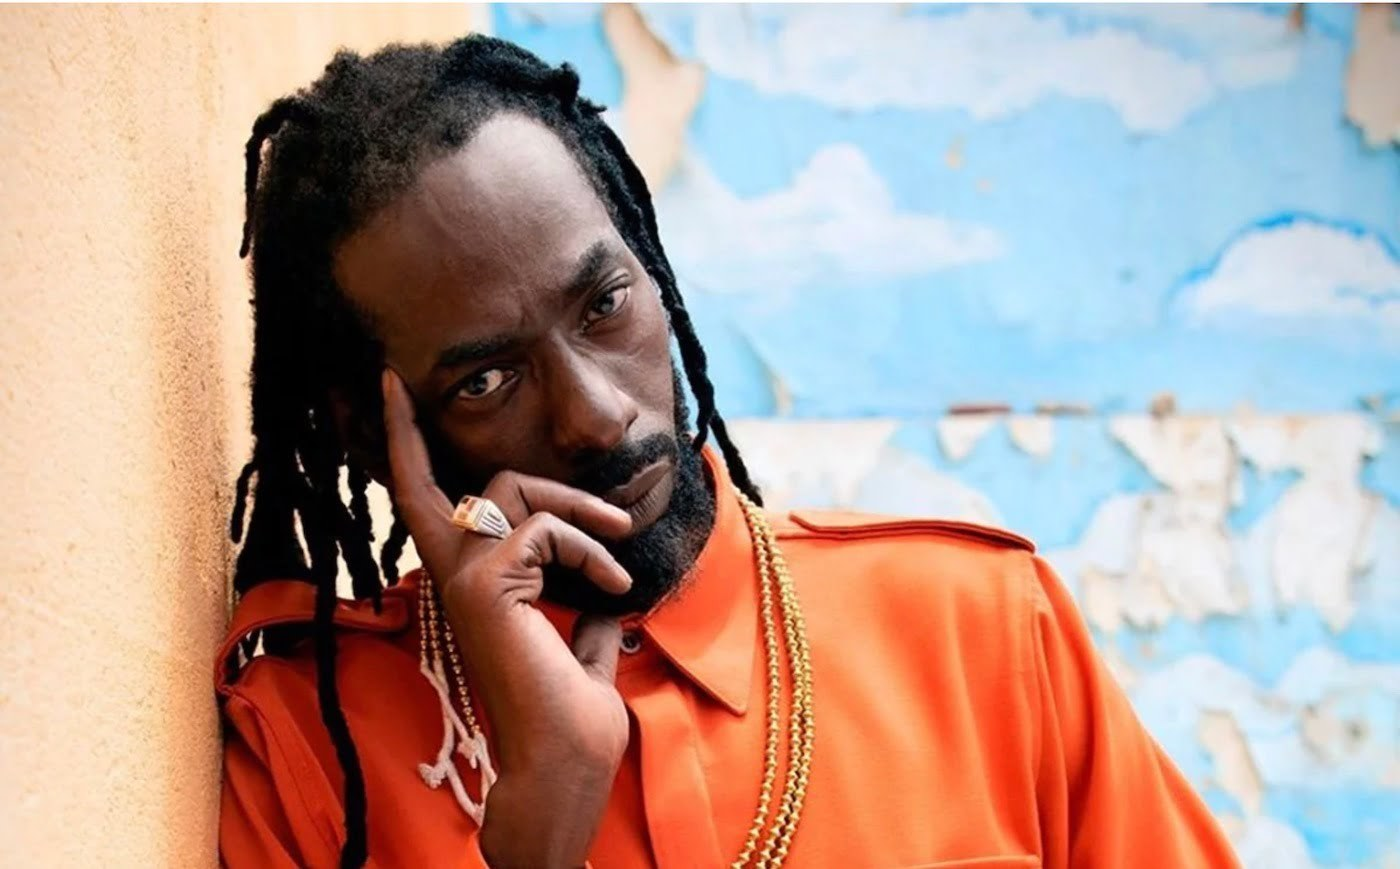 Buju Banton & Kanye West Team Up To Donate Laptops To Kids In Jamaica -  Urban Islandz